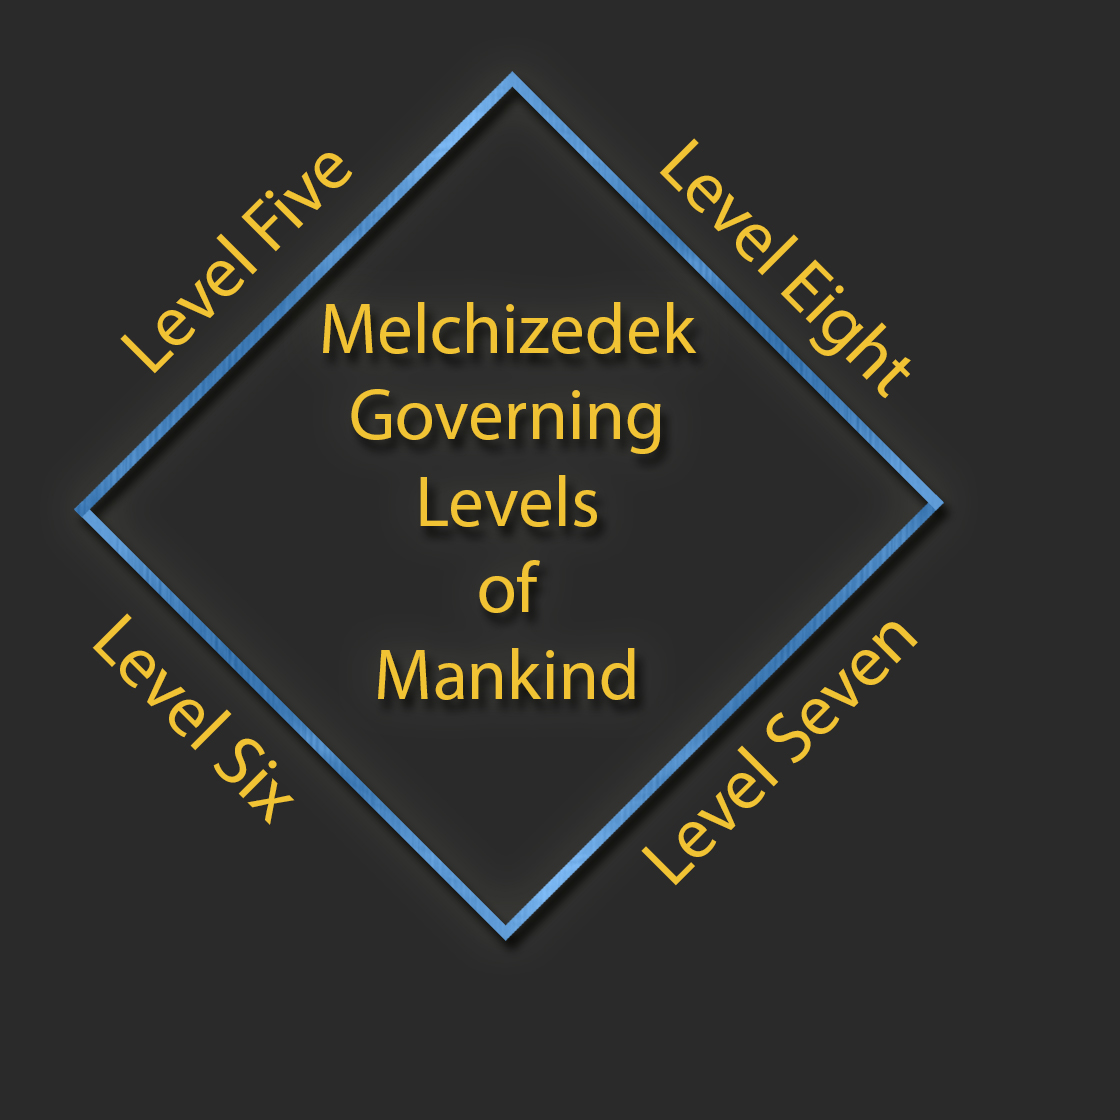 The Levels Of Mankind The Seal Of Melchizedek